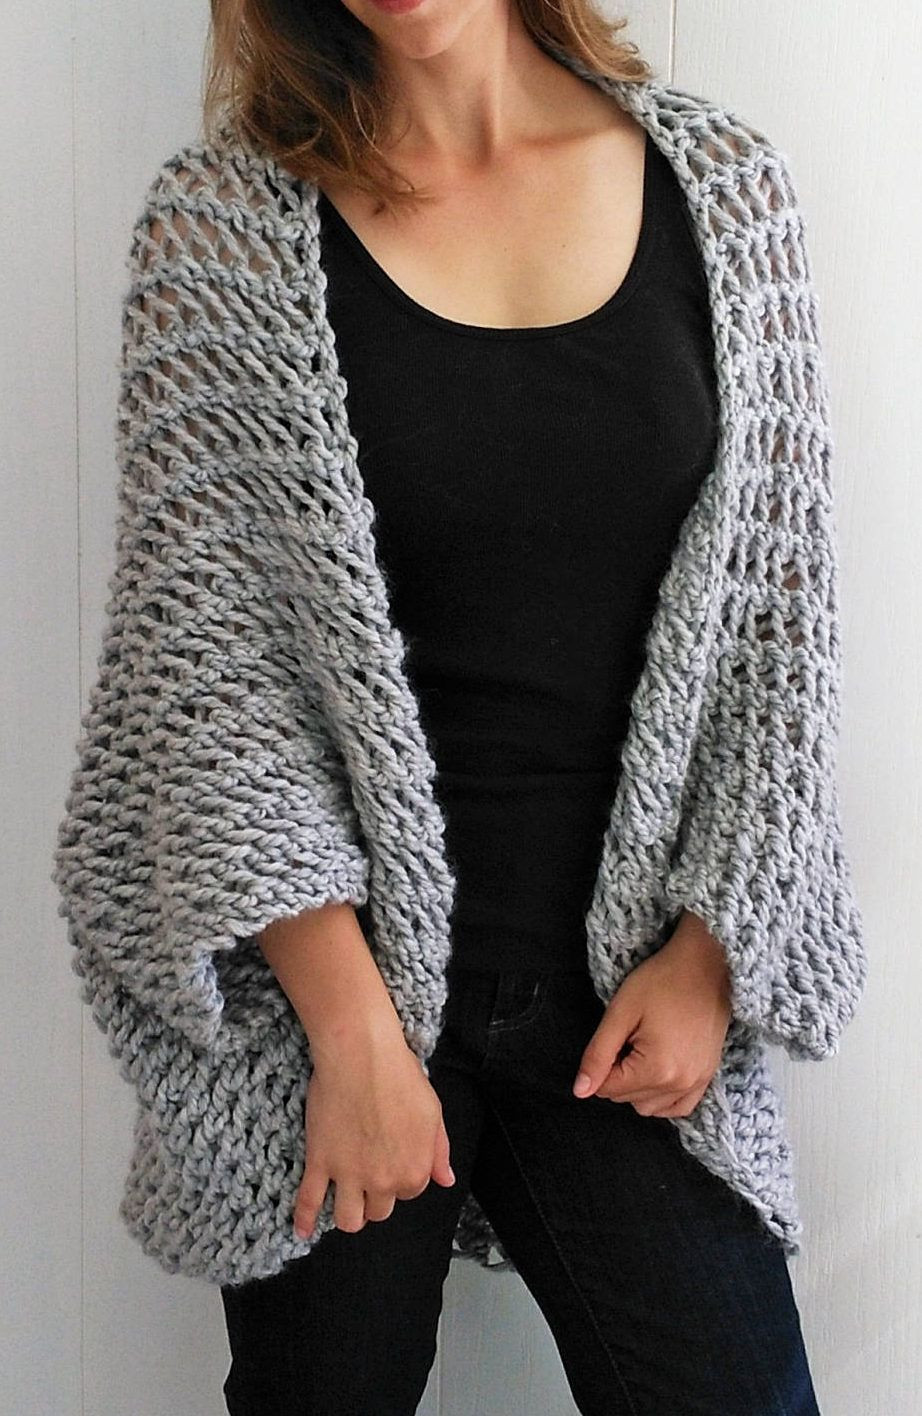 Bulky Yarn Sweater Patterns Best Of Free Knitting Pattern for Easy Cocoon Cardigan Easy Of Adorable 47 Pictures Bulky Yarn Sweater Patterns